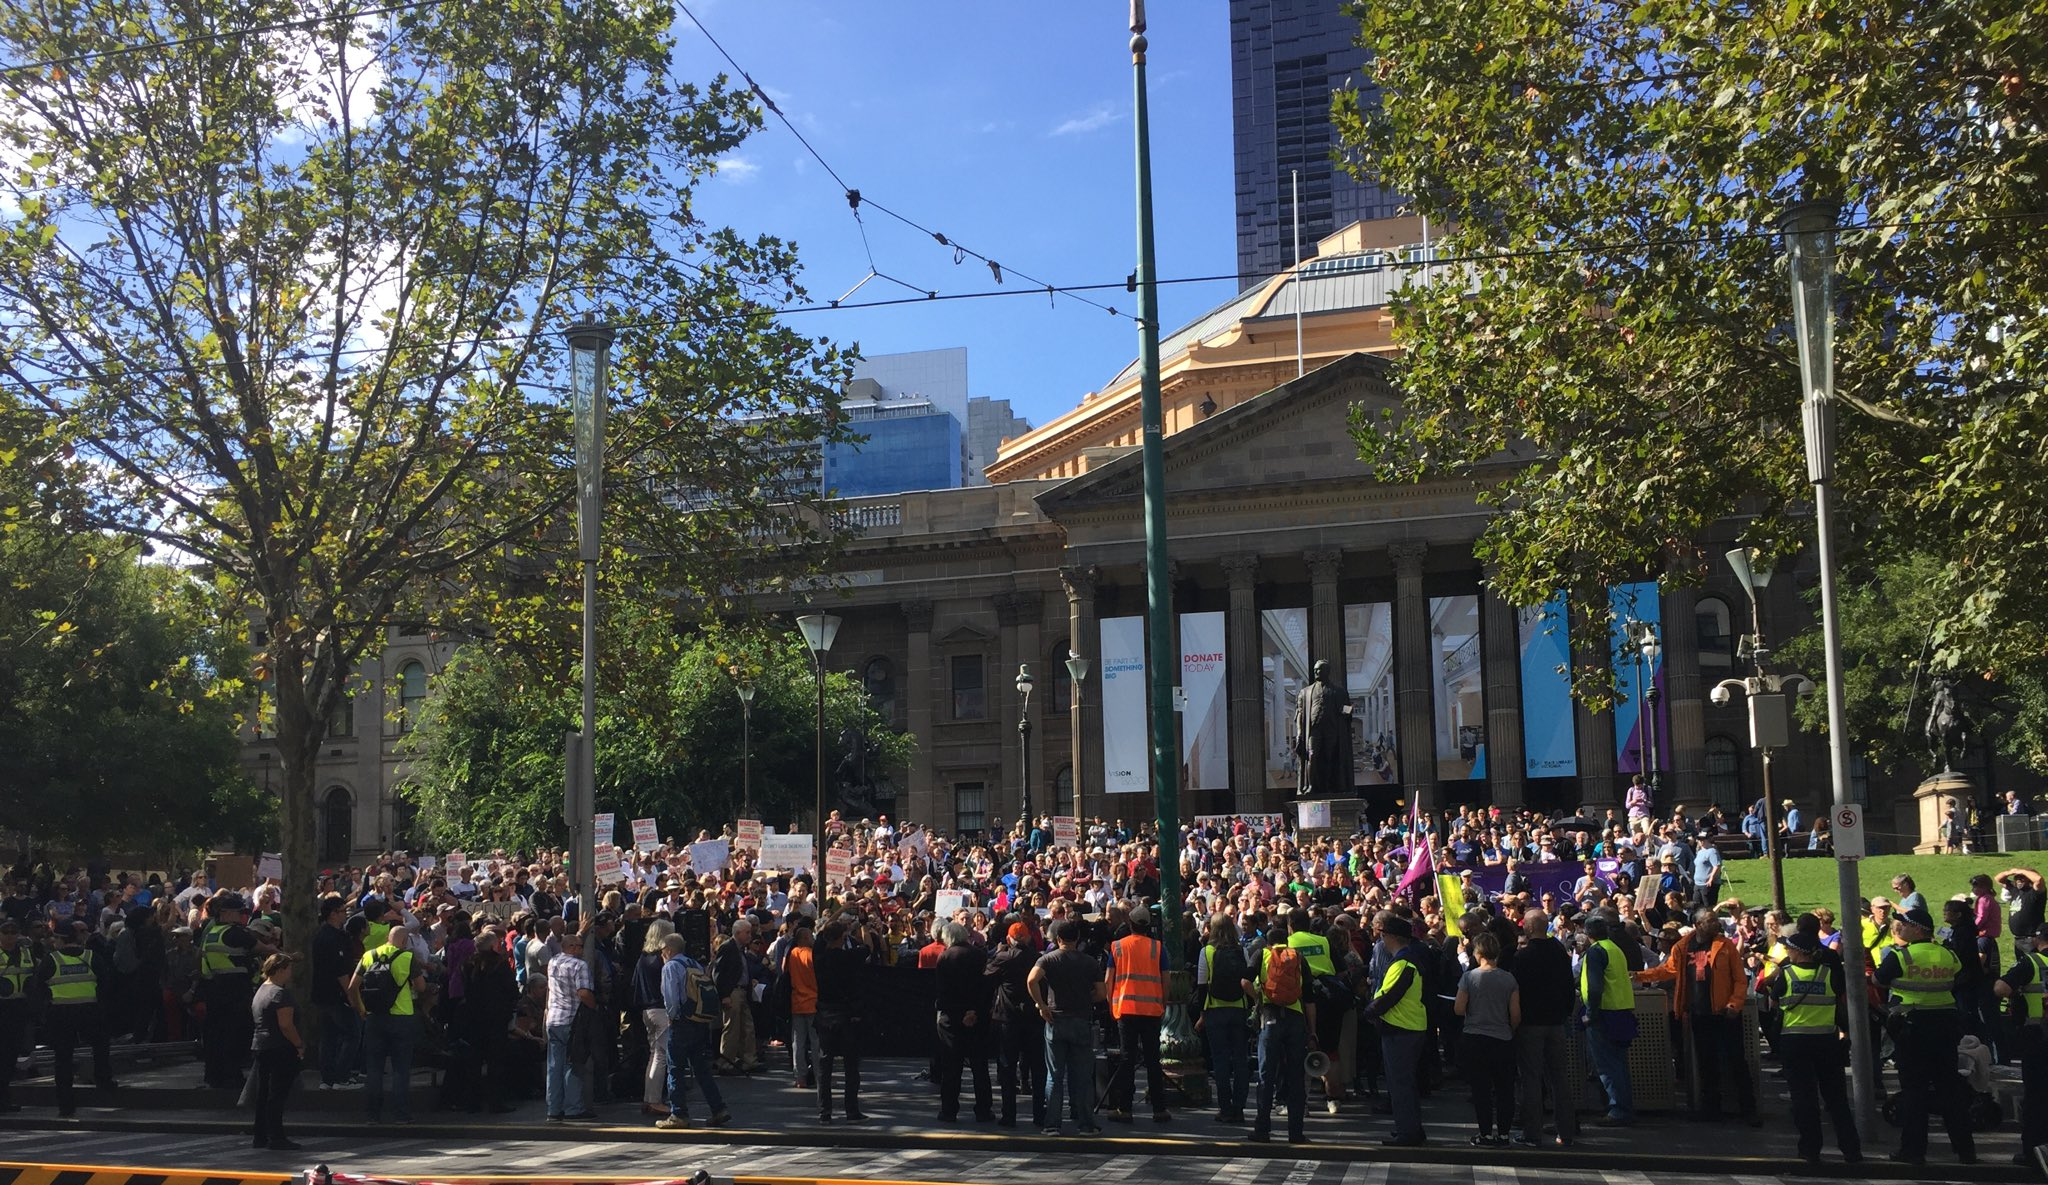 Well done people of #Melbourne #marchforscience #marchforscienceau https://t.co/TPX9GjOXe6